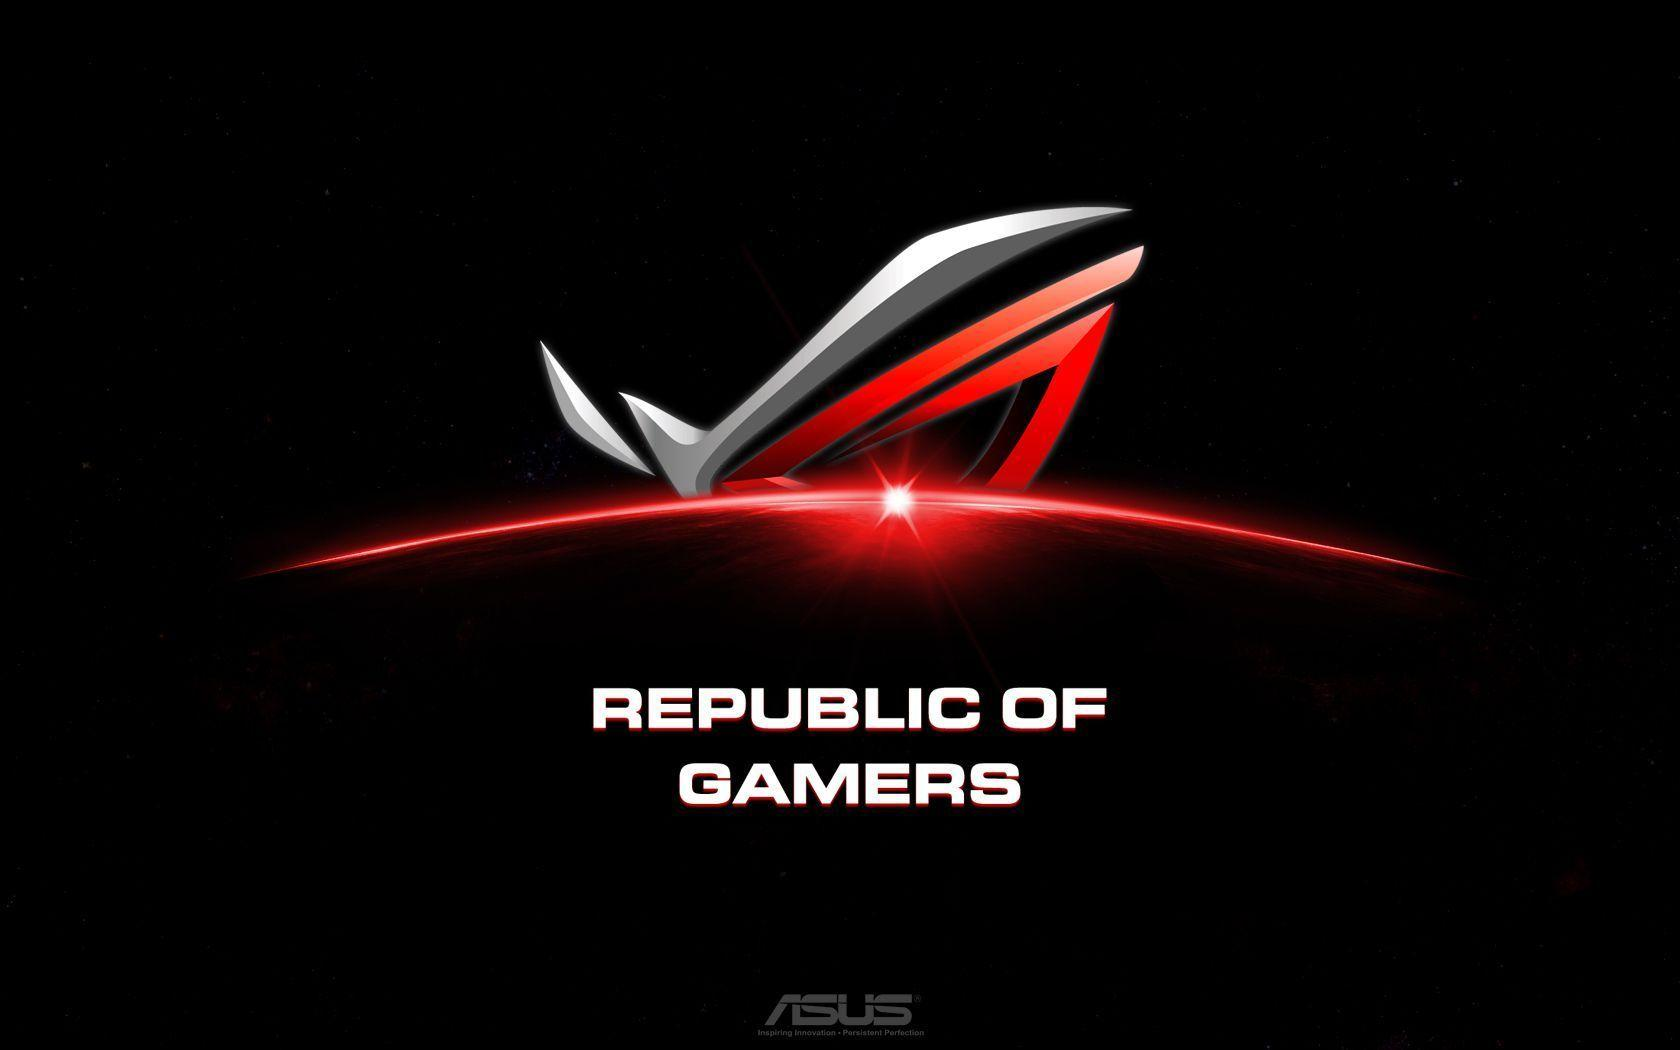 10 Latest Pc Gaming Backgrounds 1920x1080 Full Hd 1920: Gaming PC Wallpapers